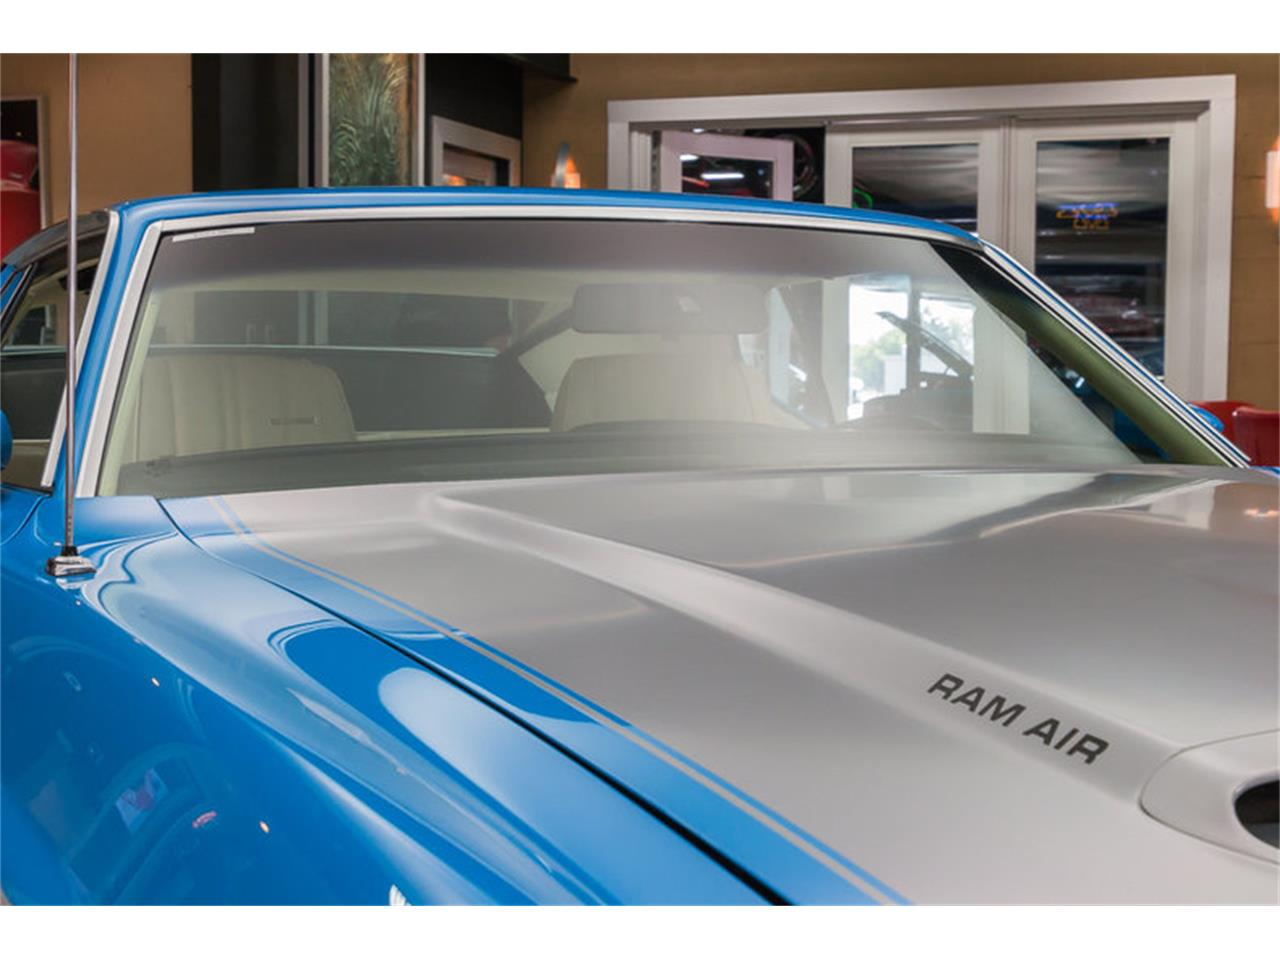 Large Picture of '71 Ford Mustang located in Michigan - $79,900.00 - IW4B